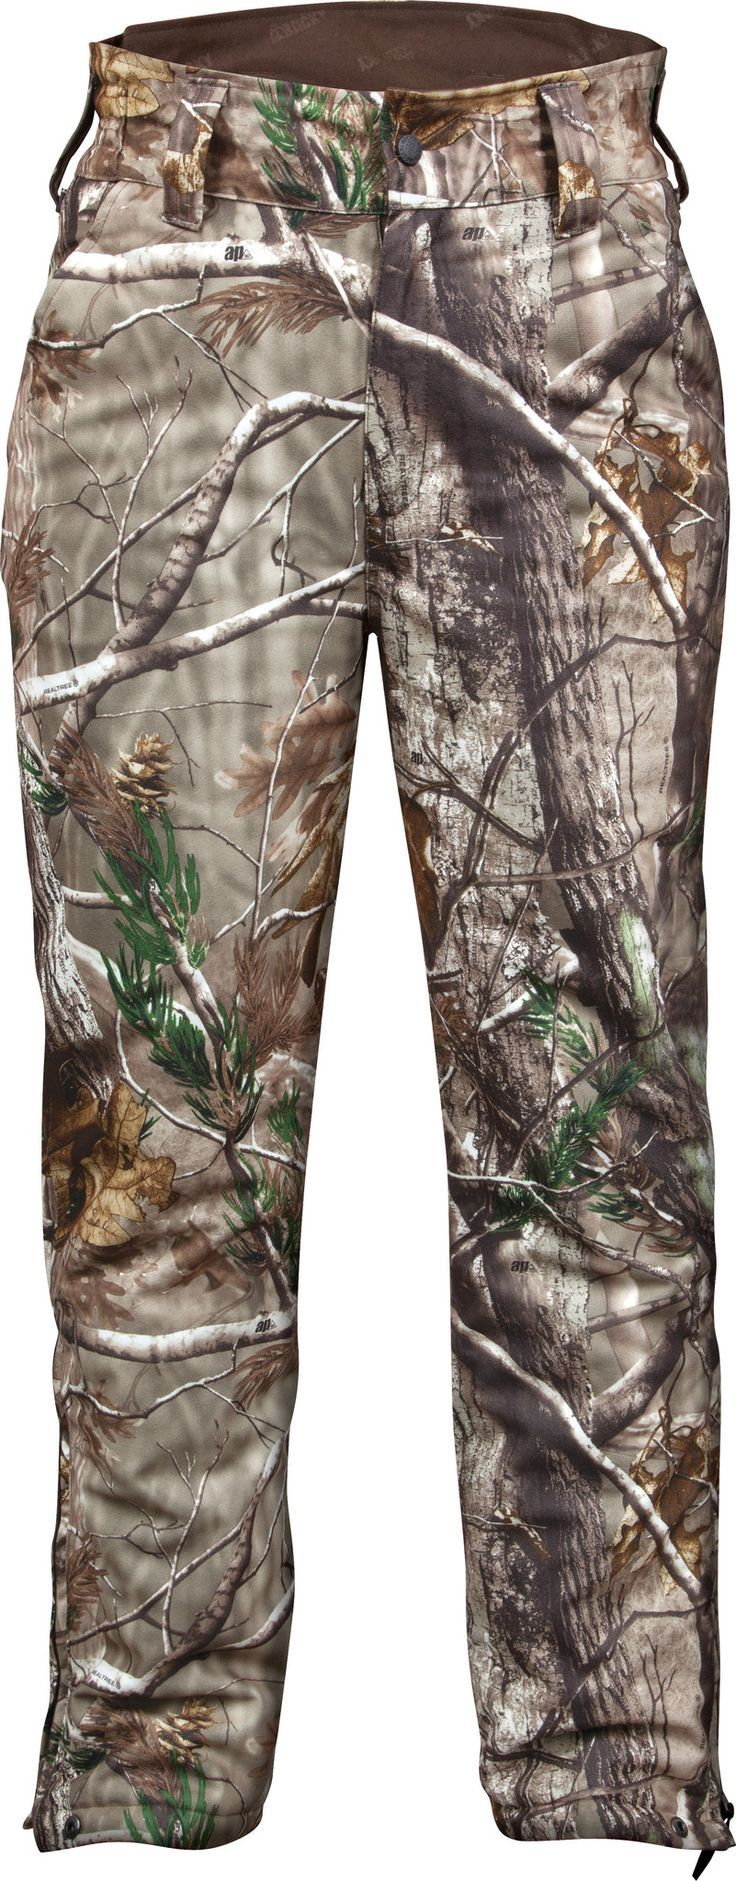 8b33b642a0dfb Rocky Prohunter Womens Realtree Waterproof Insulated Camo Hunting Pants